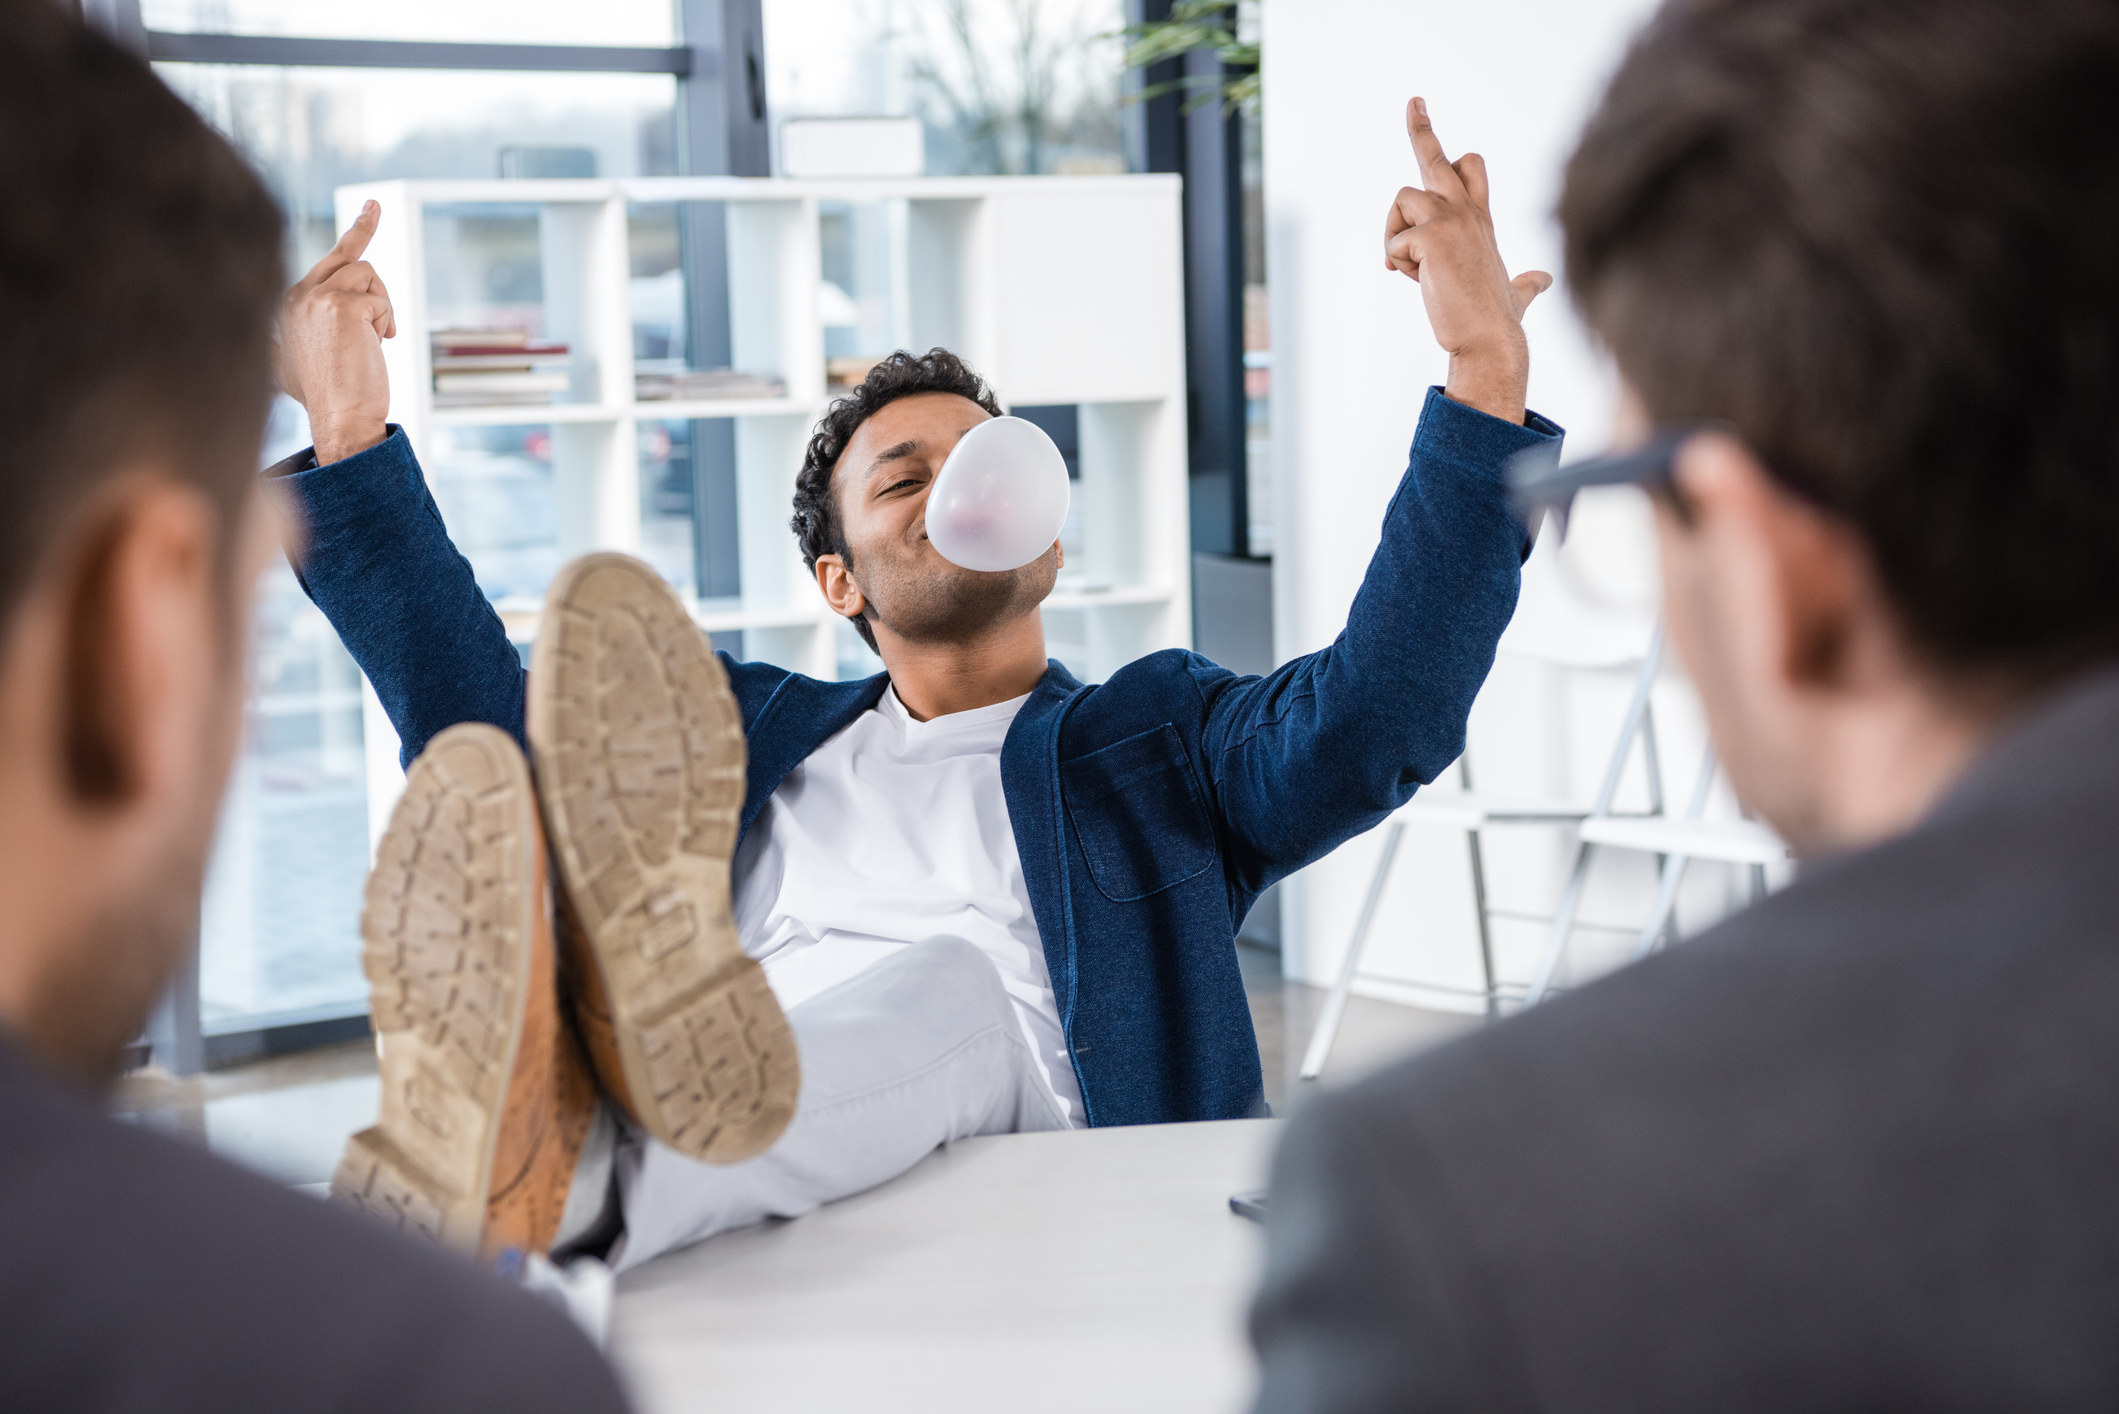 businessman blowing bubble gum and showing middle fingers during job interview